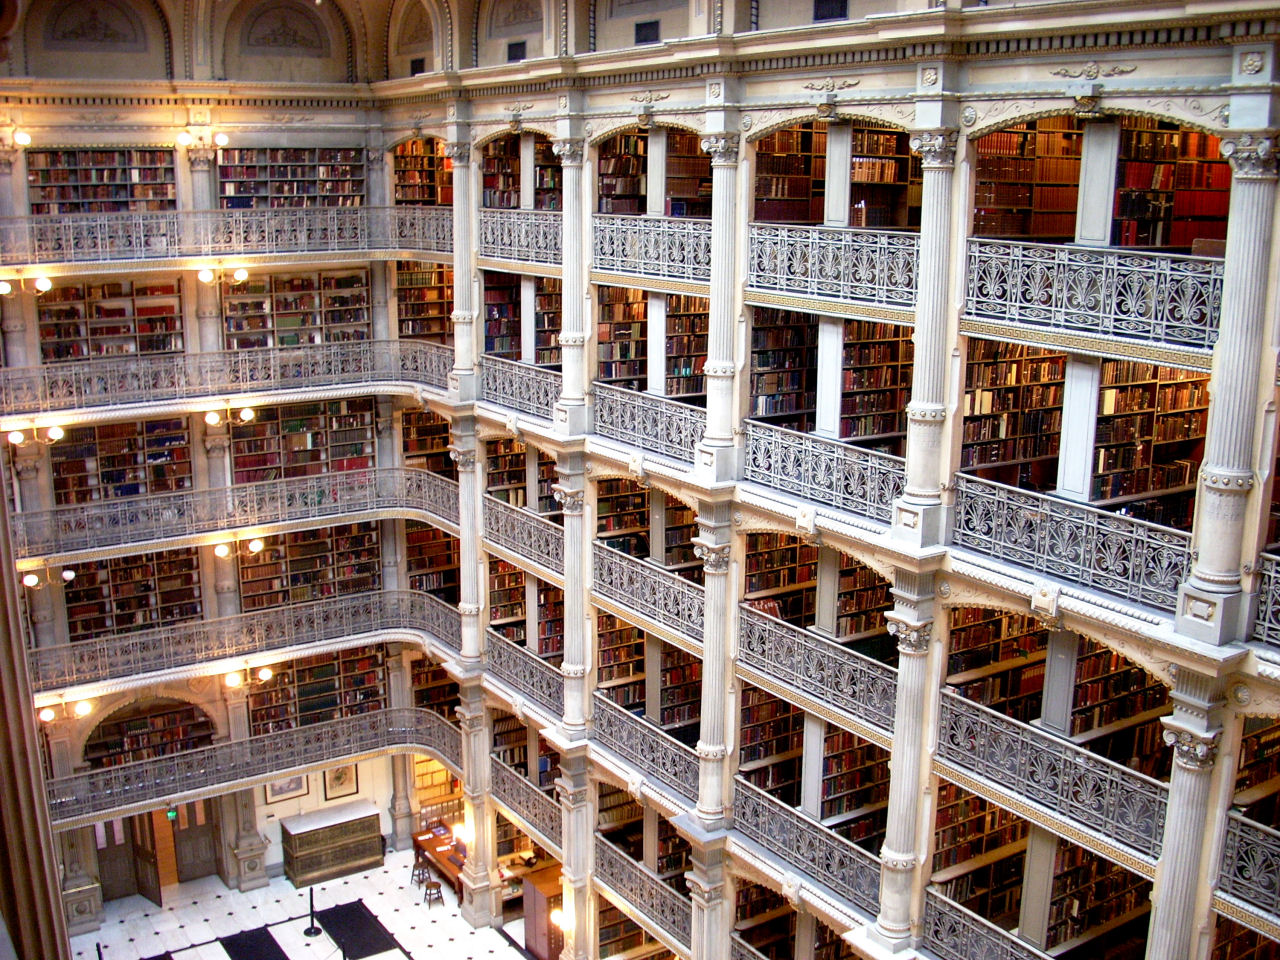 johns_hopkins_university_george_peabody_library_in_baltimore_85.jpg